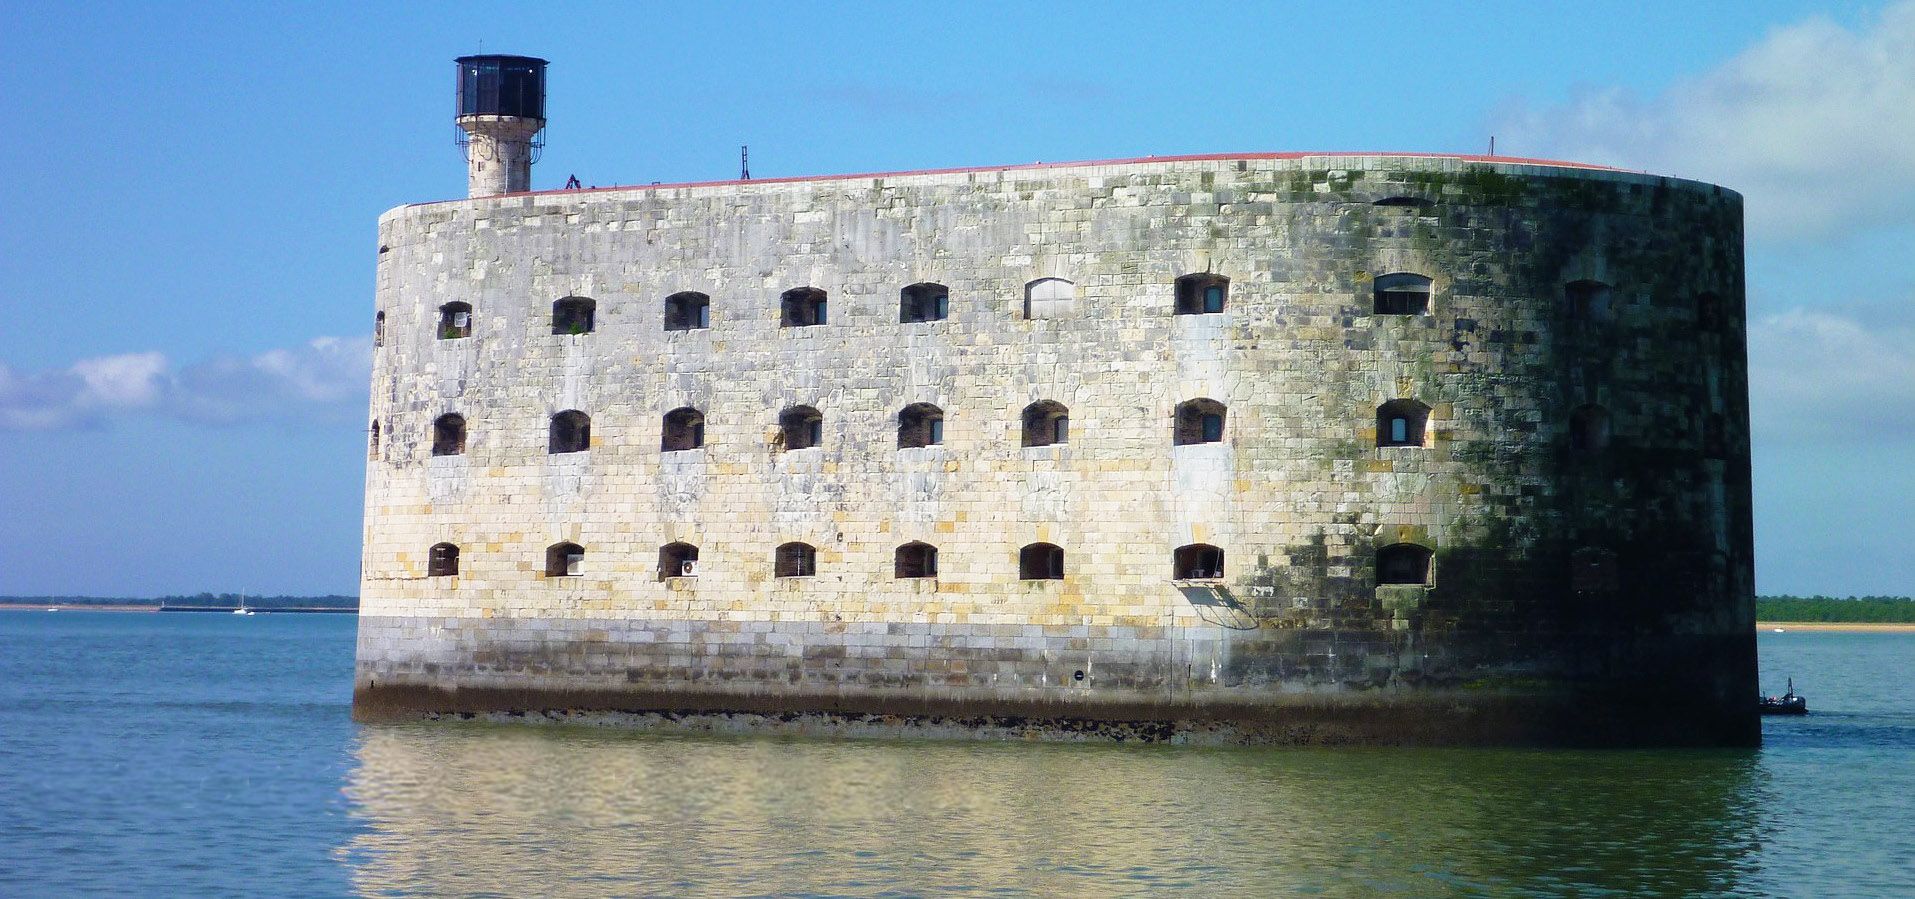 Visits of Fort Boyard in Charente Maritime